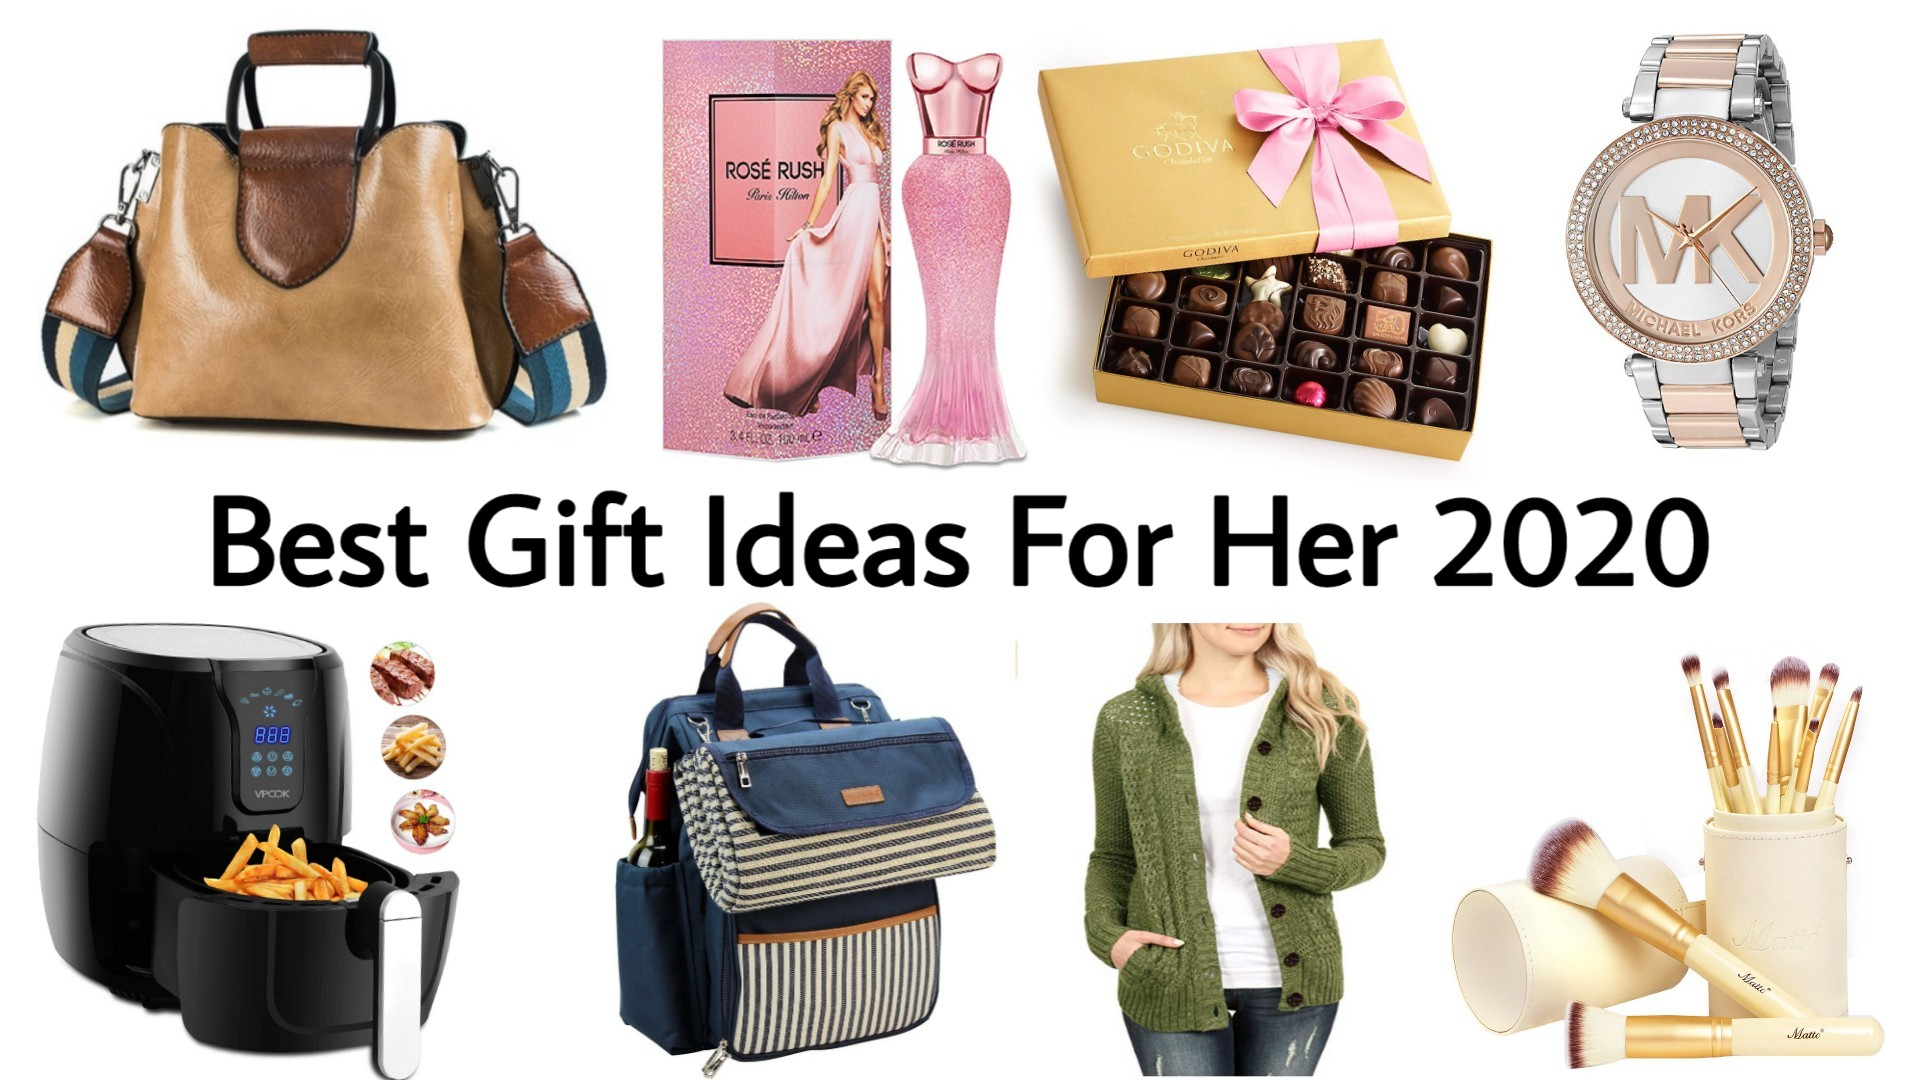 Best Christmas Presents For Her 2020 Best Christmas Gifts for Her 2020 | Top Birthday Gifts for Wife